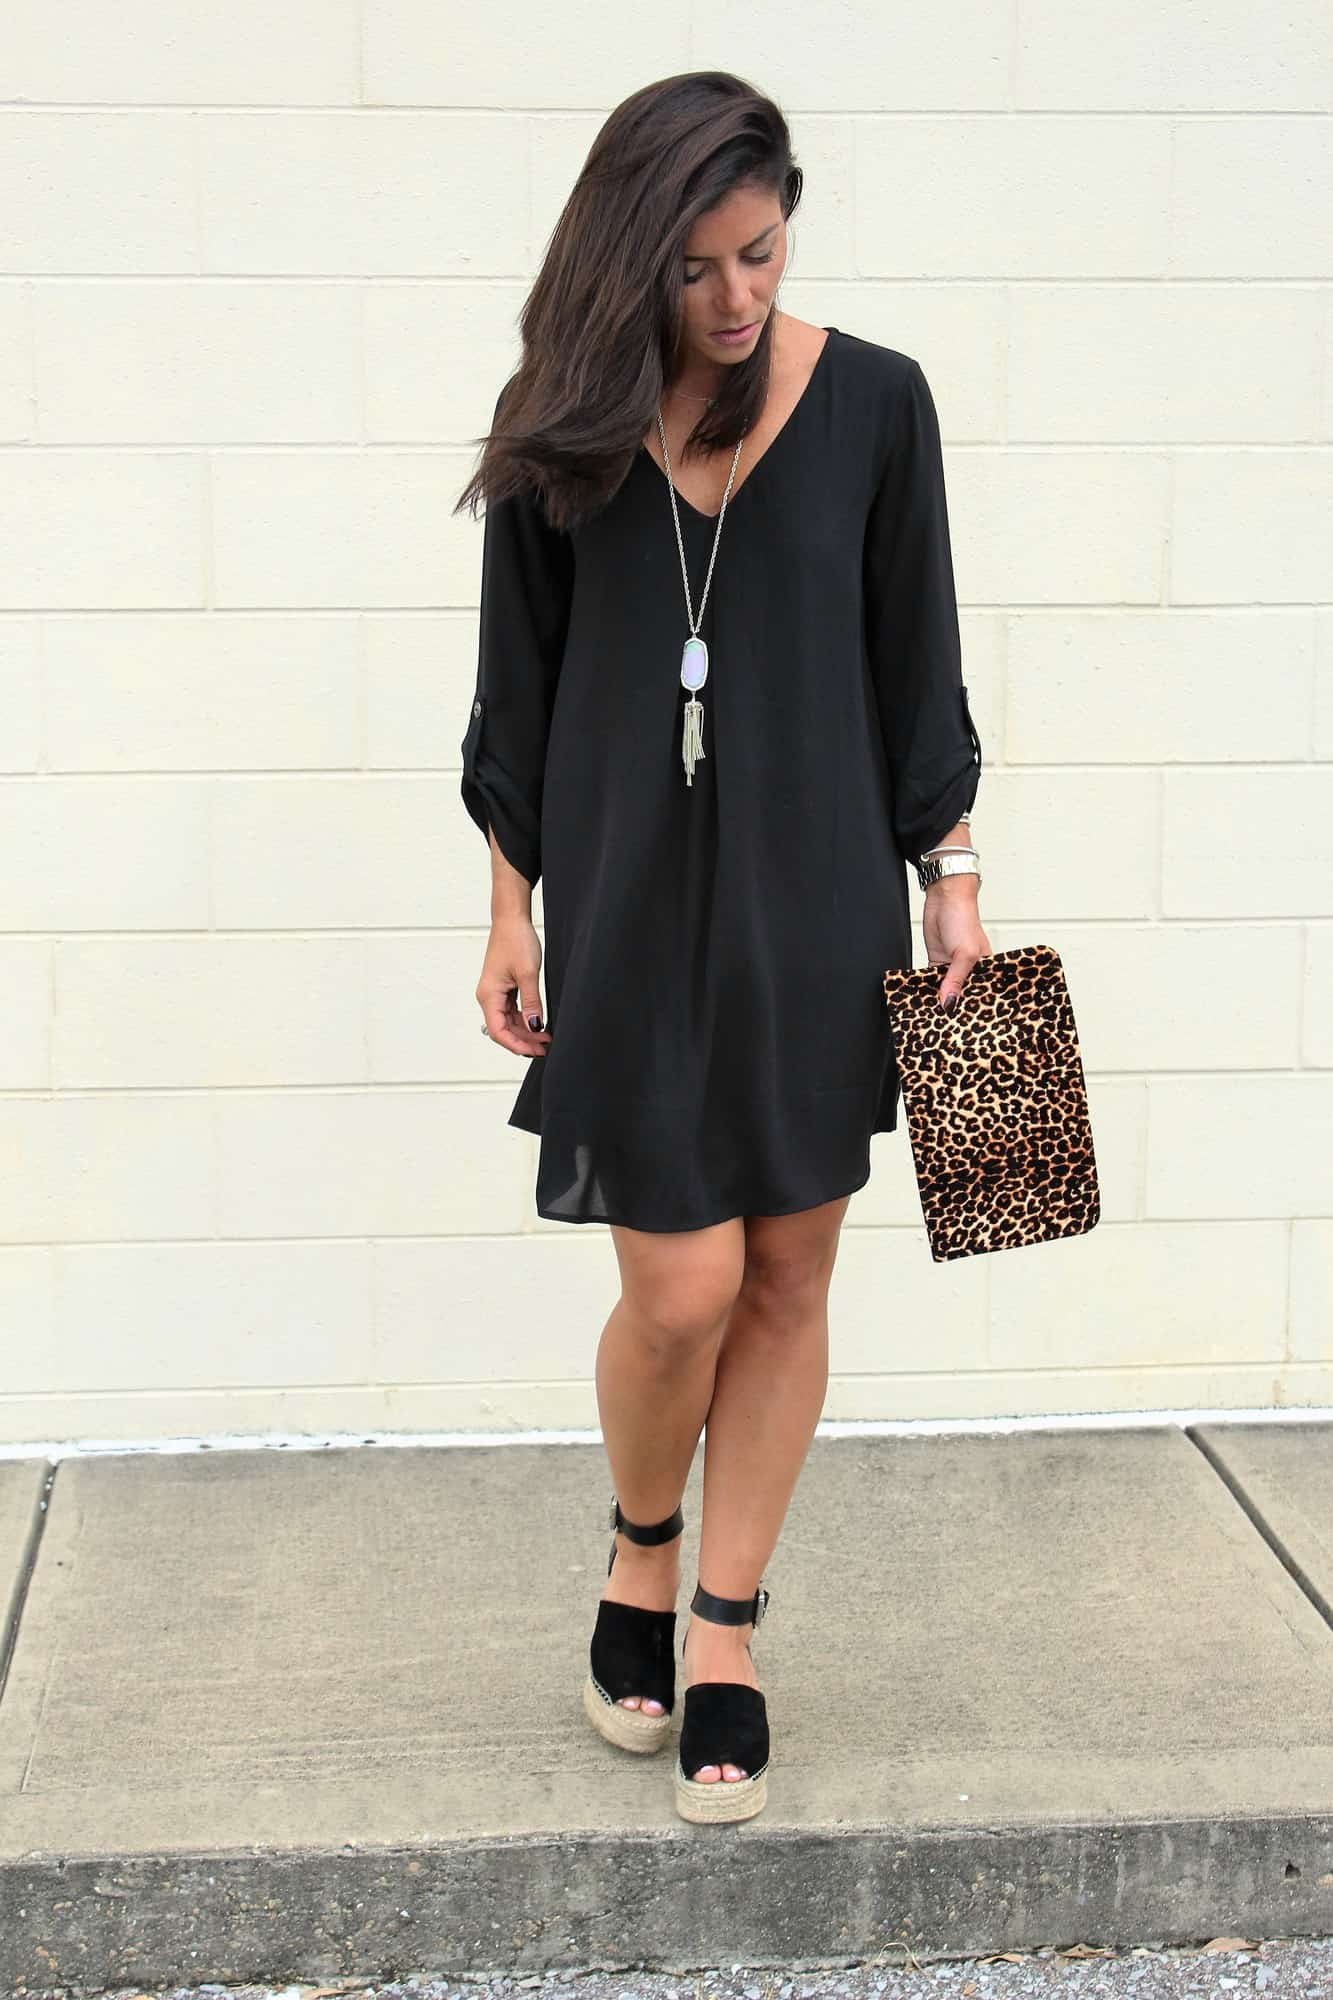 Little black dress under $50 - Pines and Palms